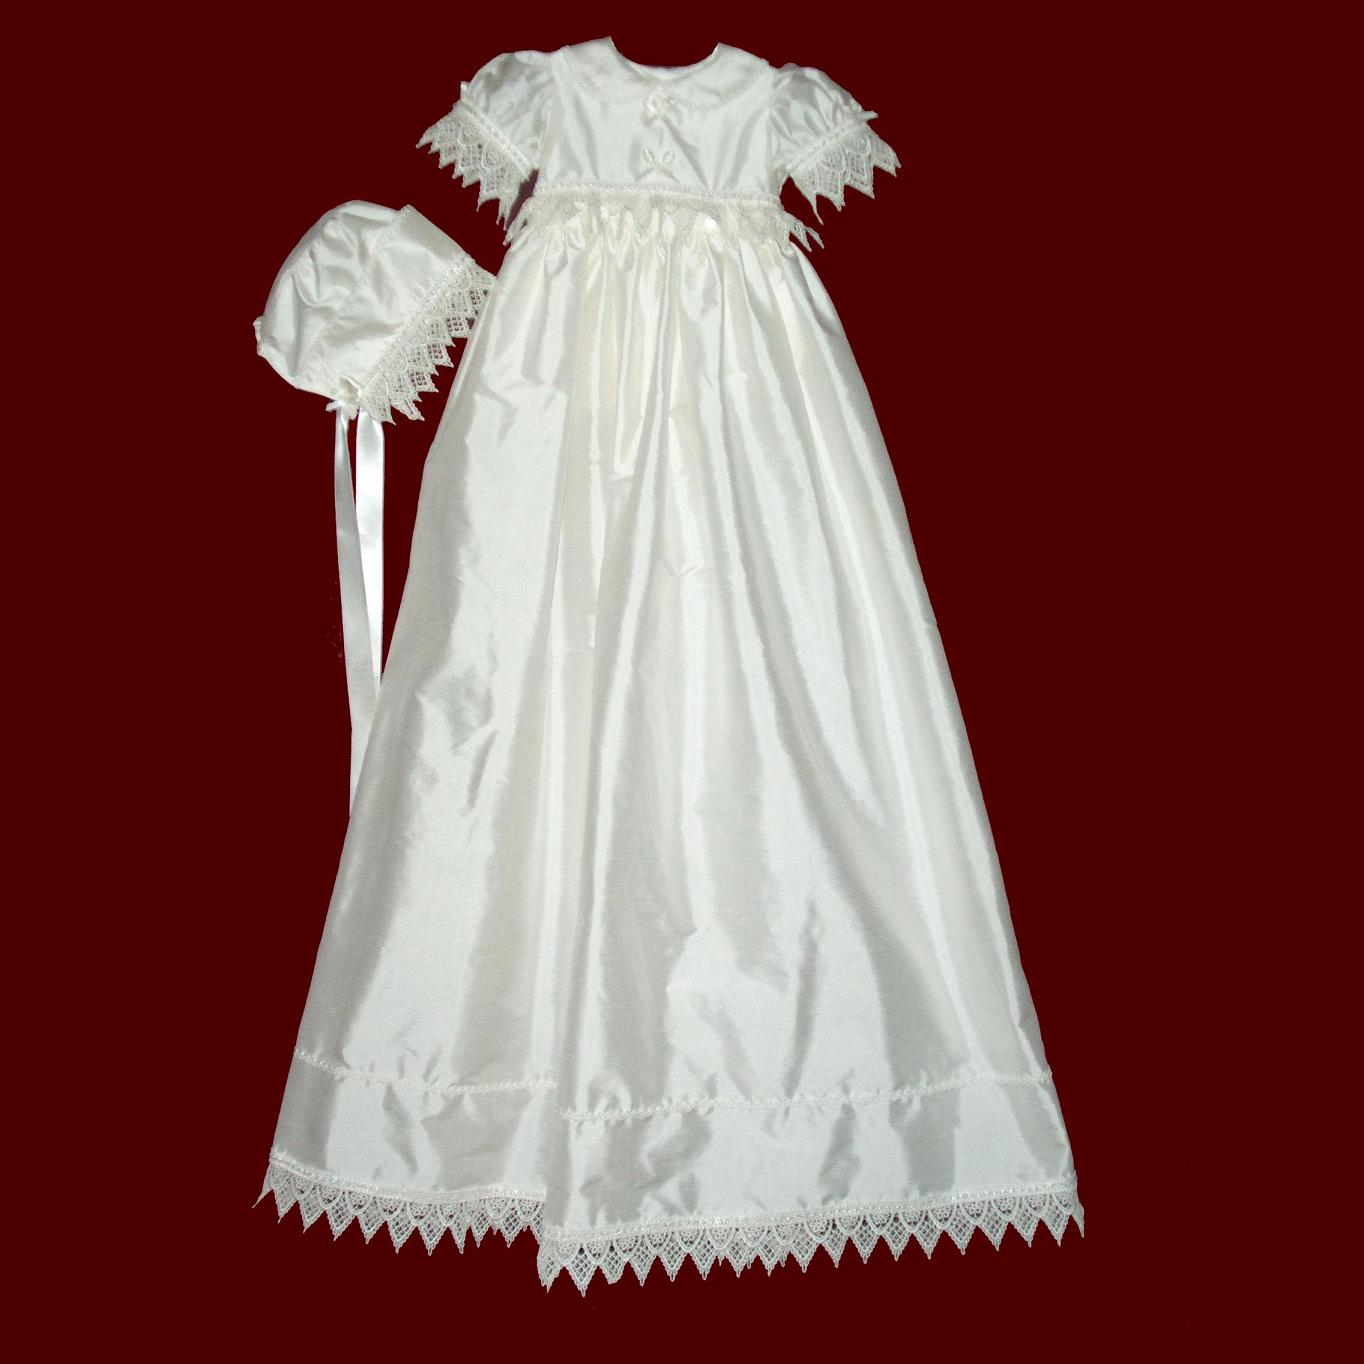 Girls Silk Christening Ensemble with Venice Lace and Detachable Gown